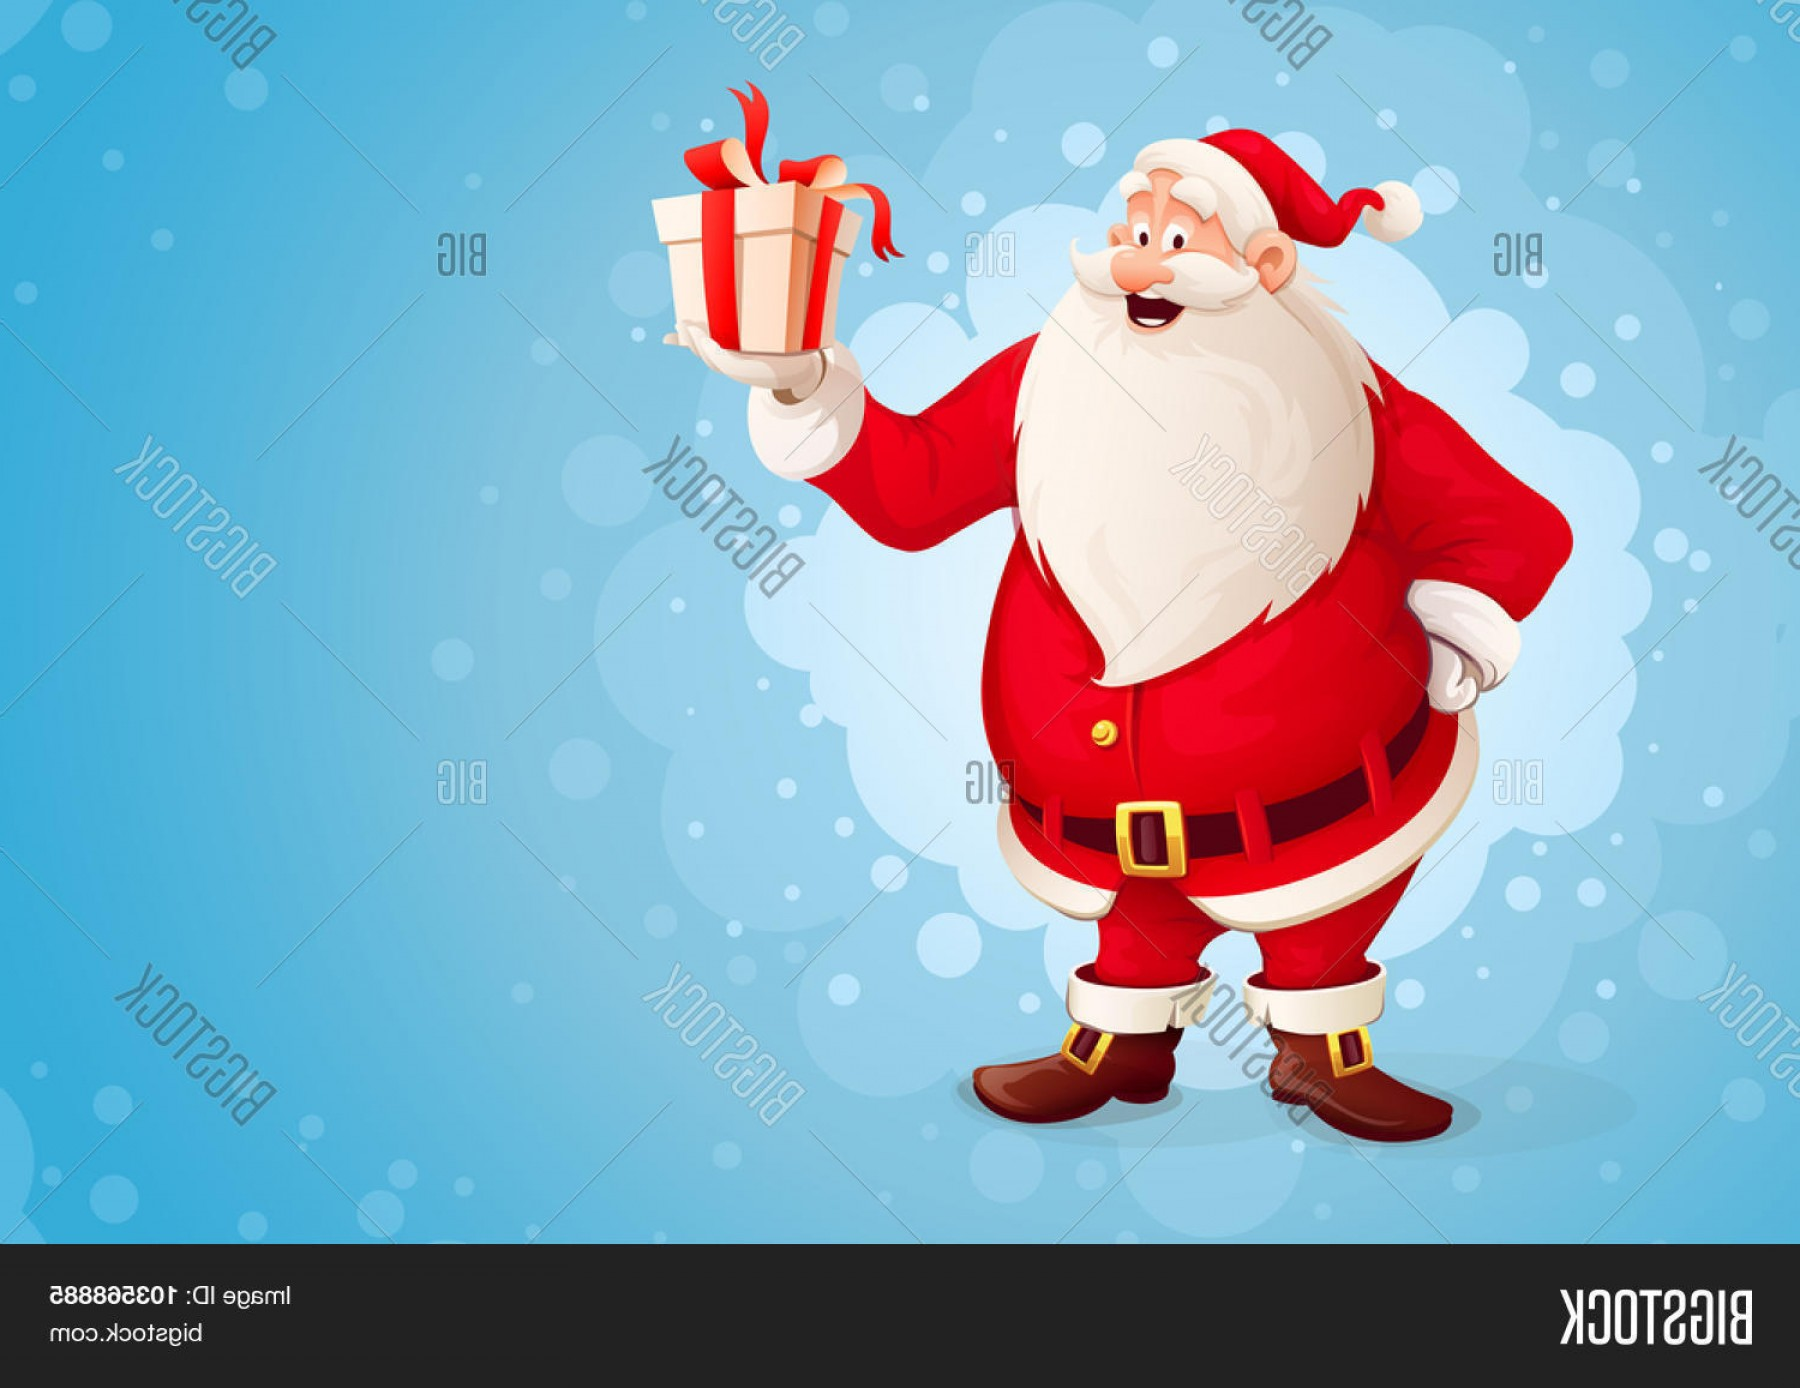 Santa Claus Vector Illustration: Stock Vector Merry Santa Claus Holds Christmas Gift In Box Vector Illustration Transparent Objects Used For Lights And Shadows Drawing